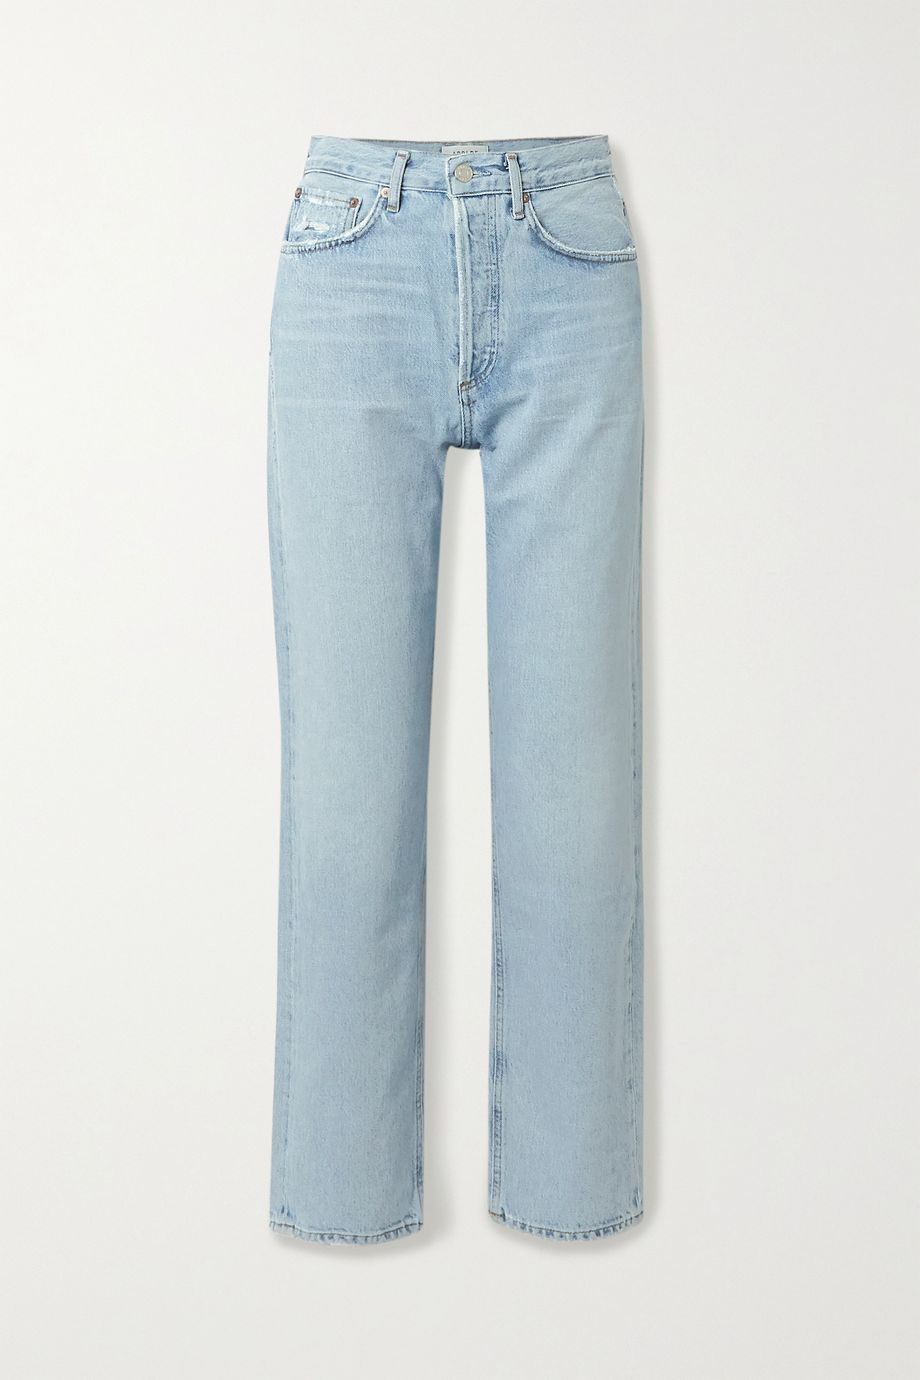 AGOLDE '90s distressed mid-rise straight-leg jeans